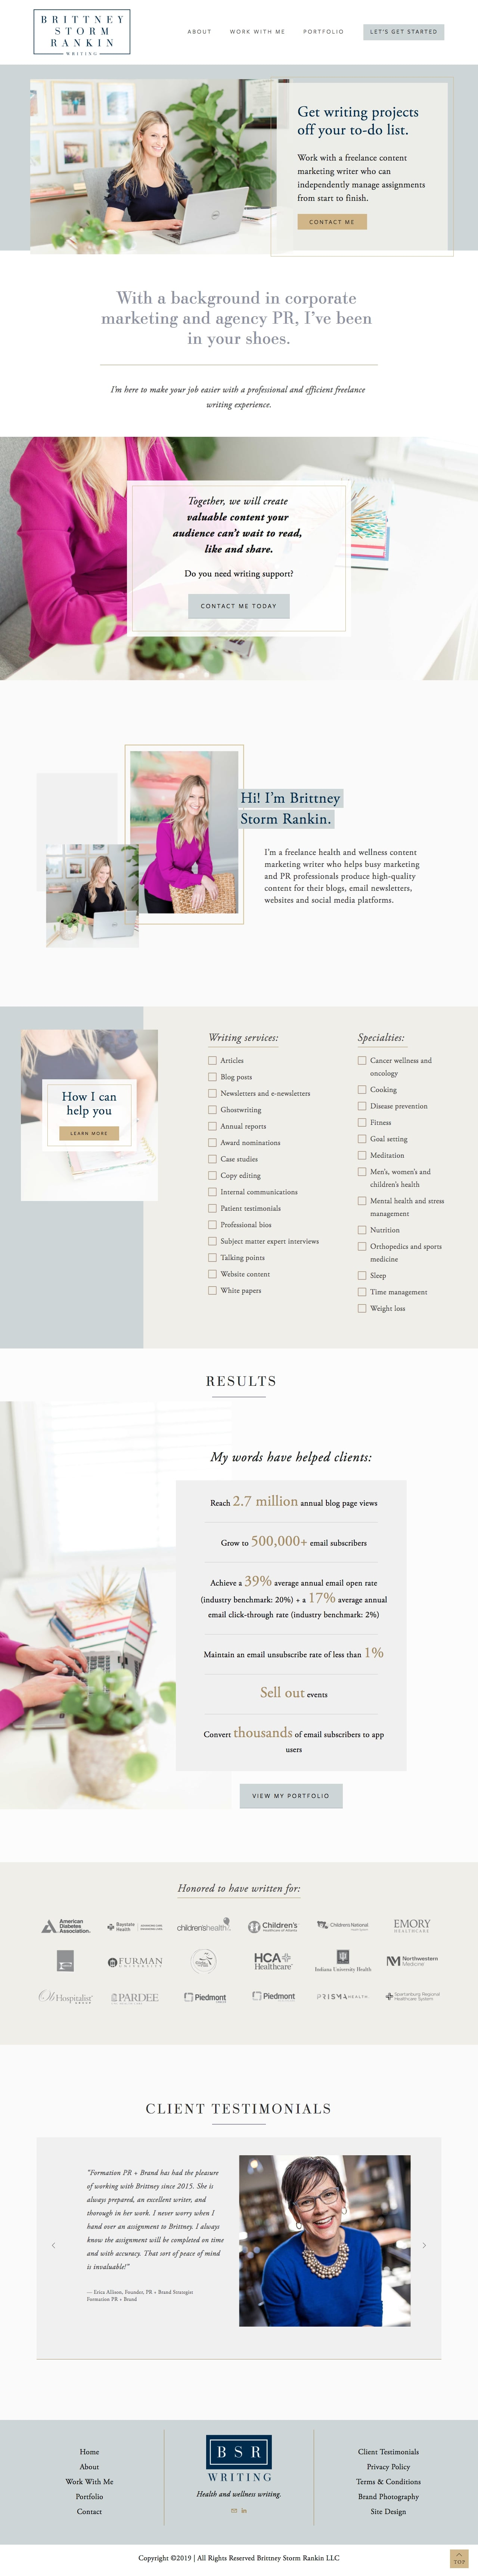 brittney-storm-rankin-best-example-squarespace-website-for-marketing-and-content-businesses.jpg